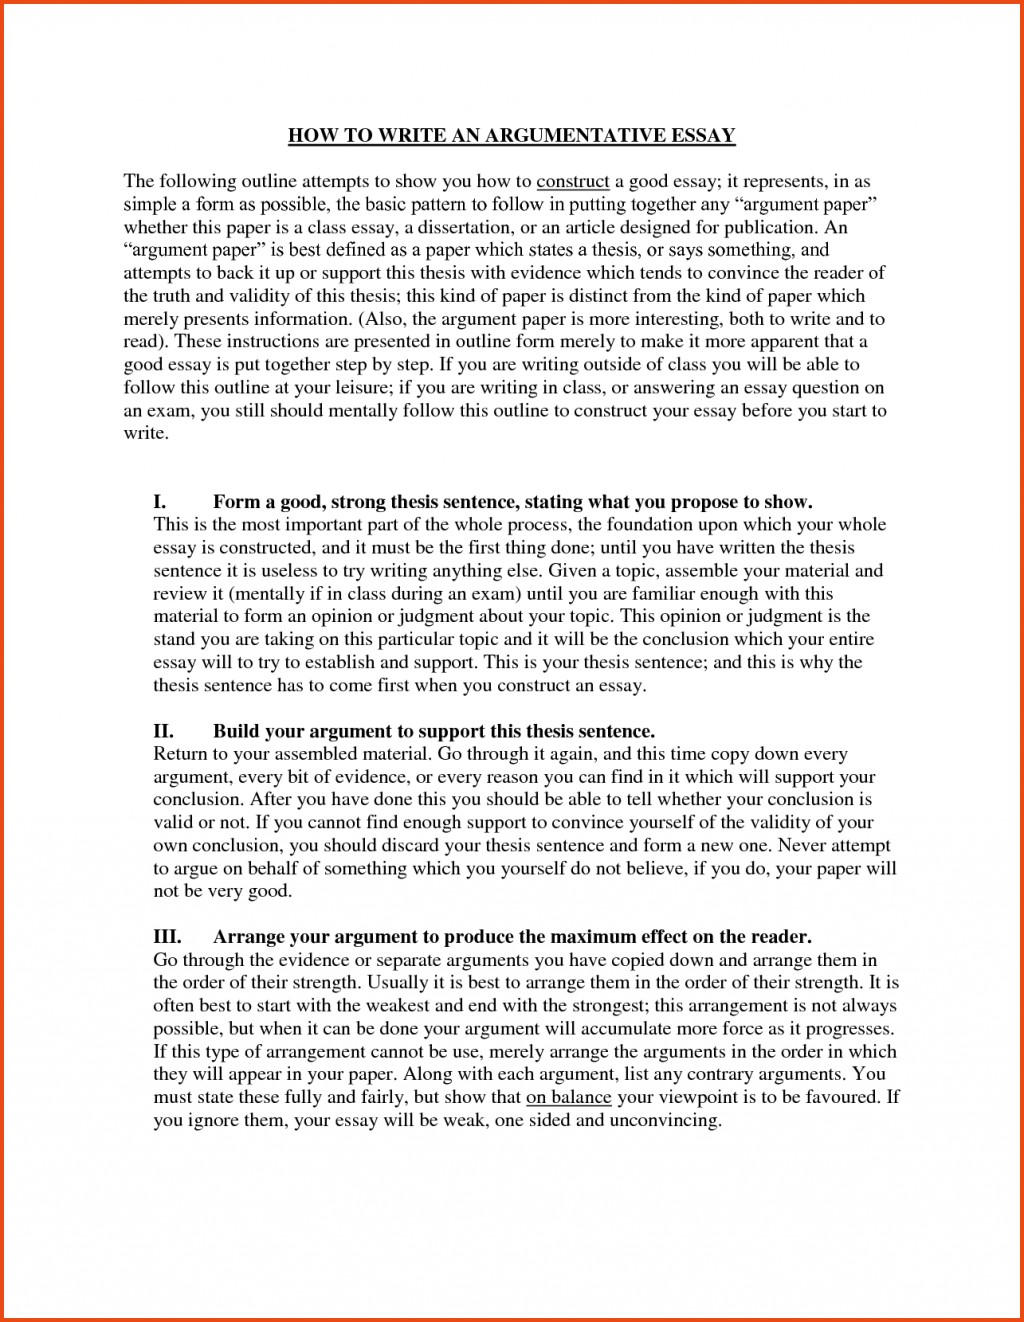 005 Essay Example How To Start An Brilliant Ideas Of Good Ways About Yourself Dissertation Nice Amazing Write A Paper On Climate Change Expository Examples With Quote Format Large